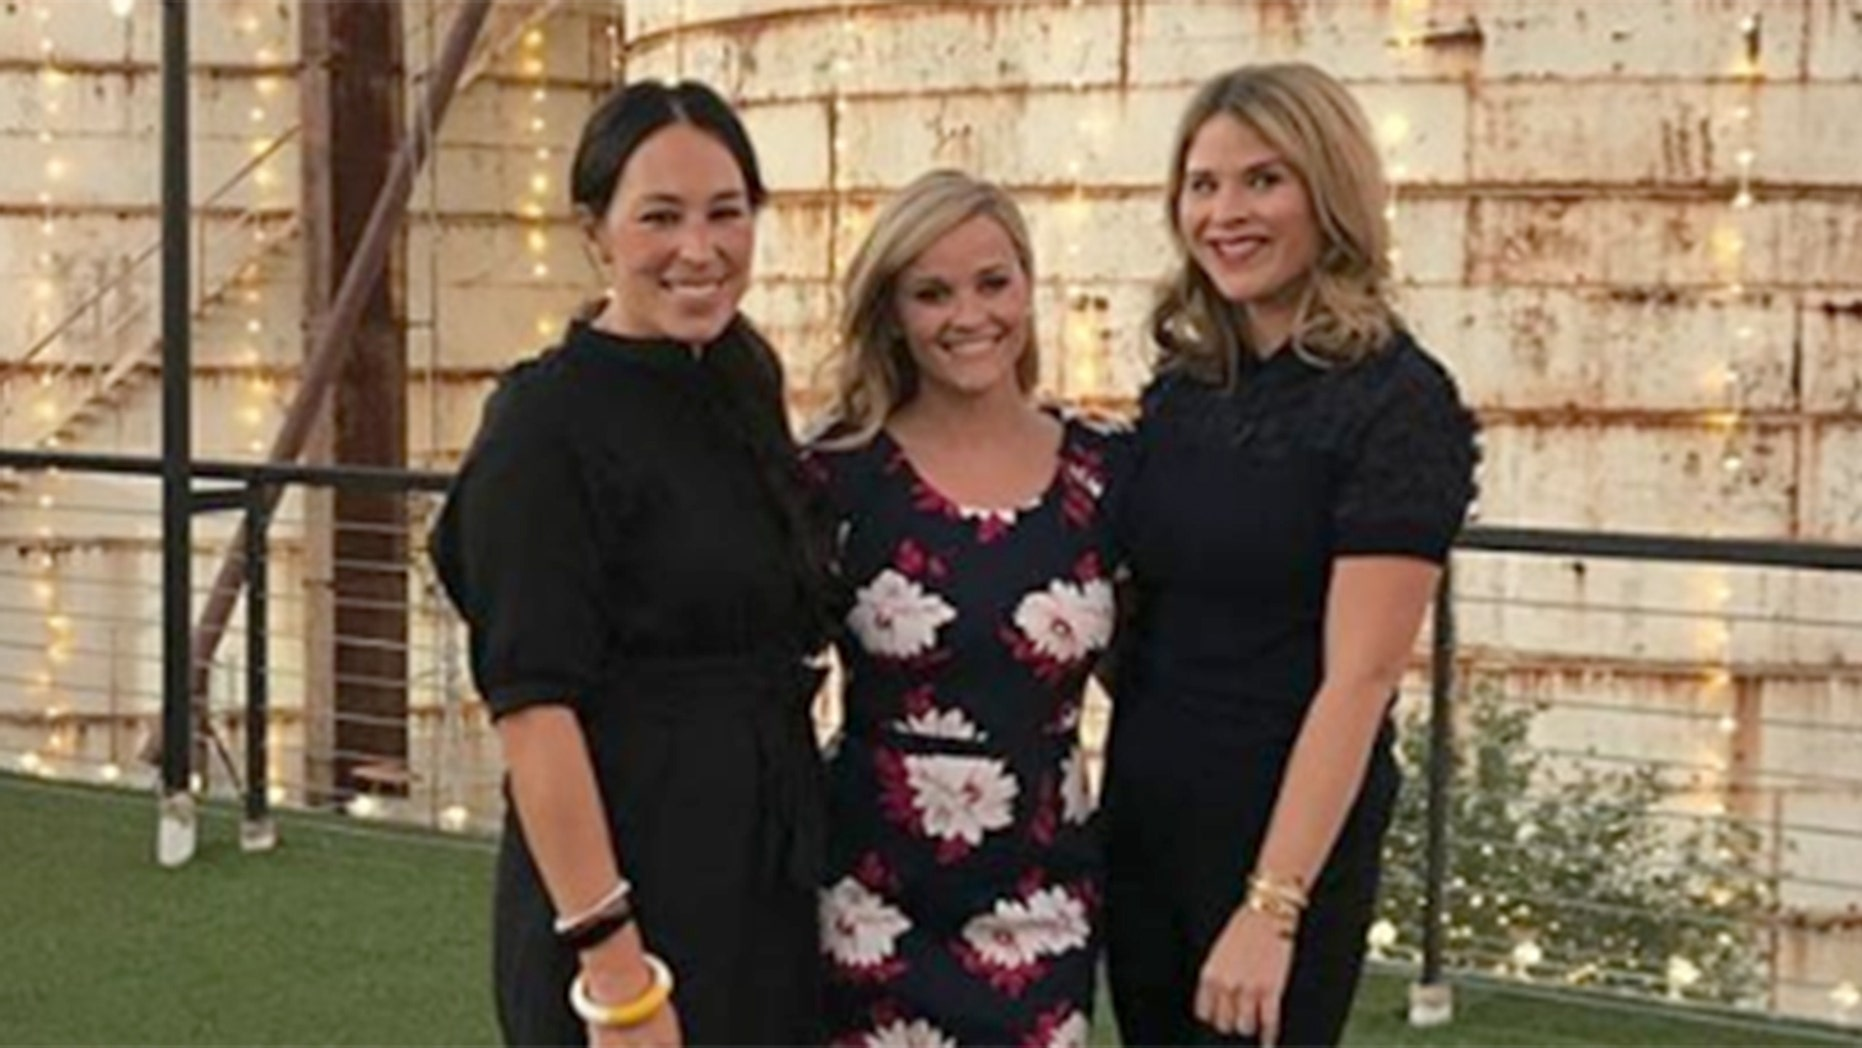 Reese Witherspoon Wred Up Her Cross Country Book Launch Tour At Joanna And Chip Gaines Magnolia Market Center In Waco Texas On Thursday